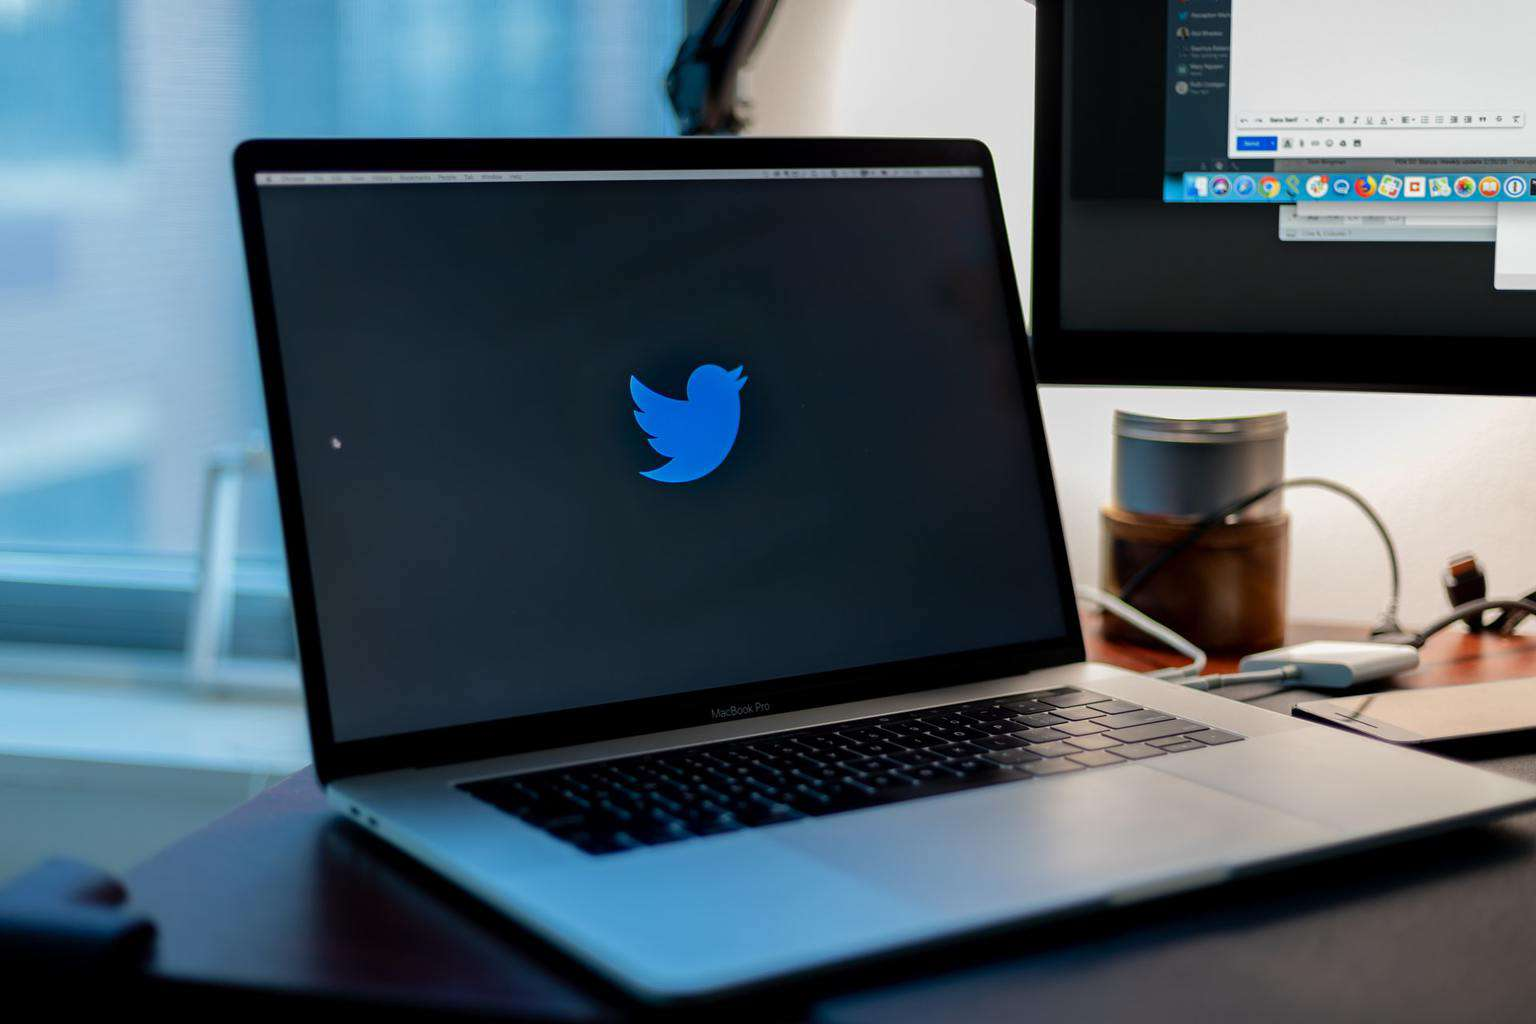 The Top 19 Twitter User Statistics for 2020 to Guide Your Marketing Strategy